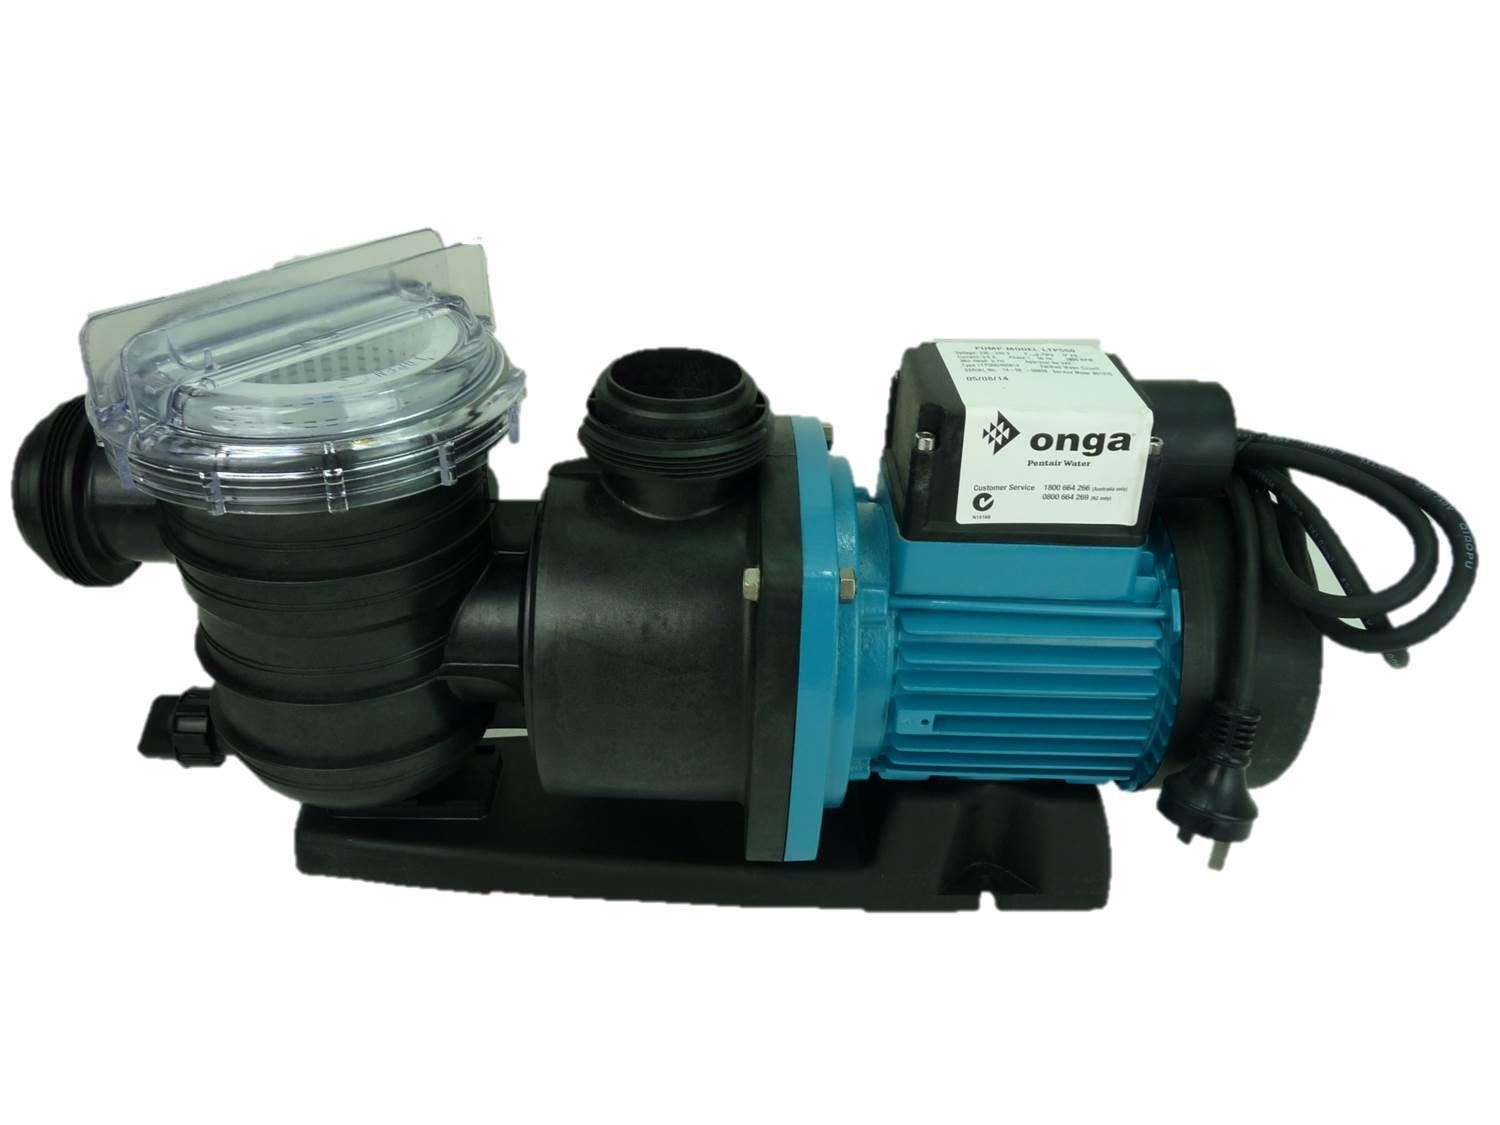 Geniune Ltp750 Leisure Pool Pump Hp Swimming Pool Pump Spa Solar Ong A Ebay